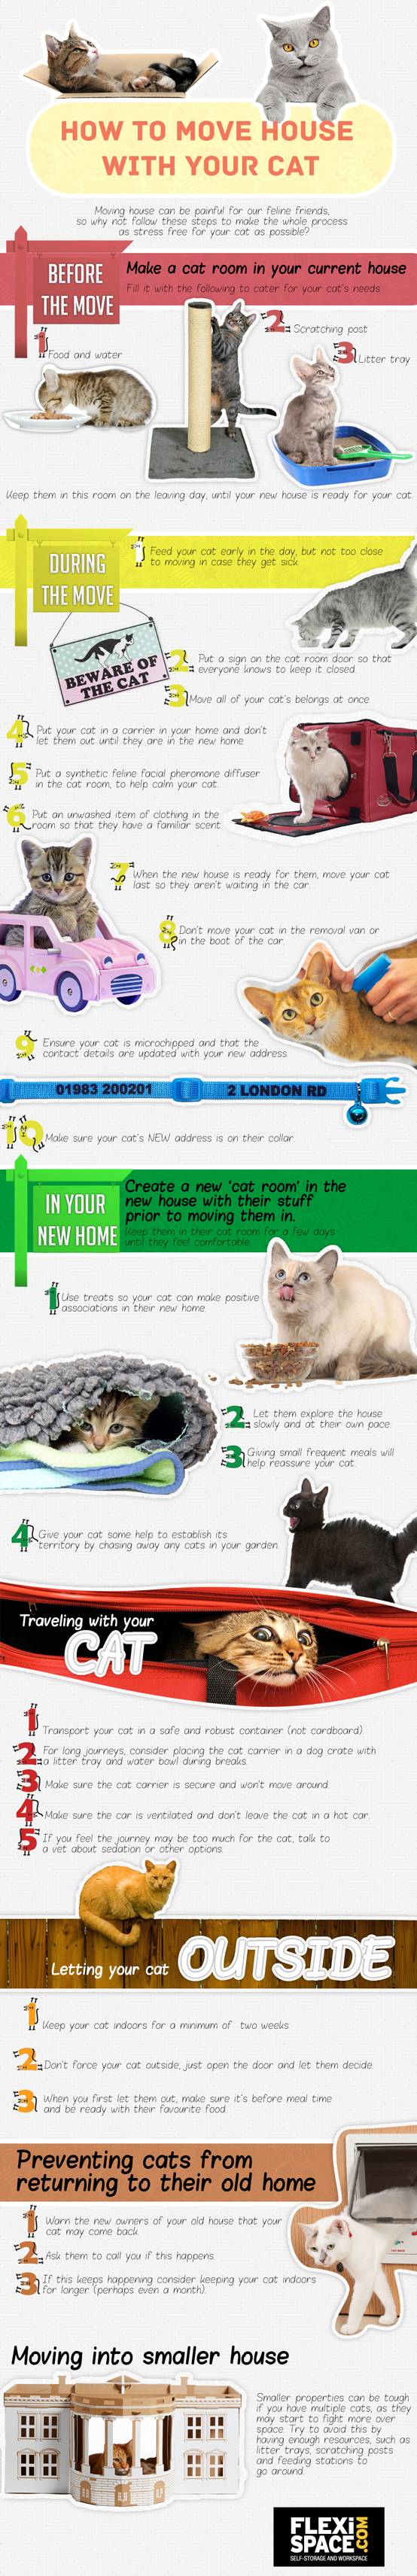 cats_infographic